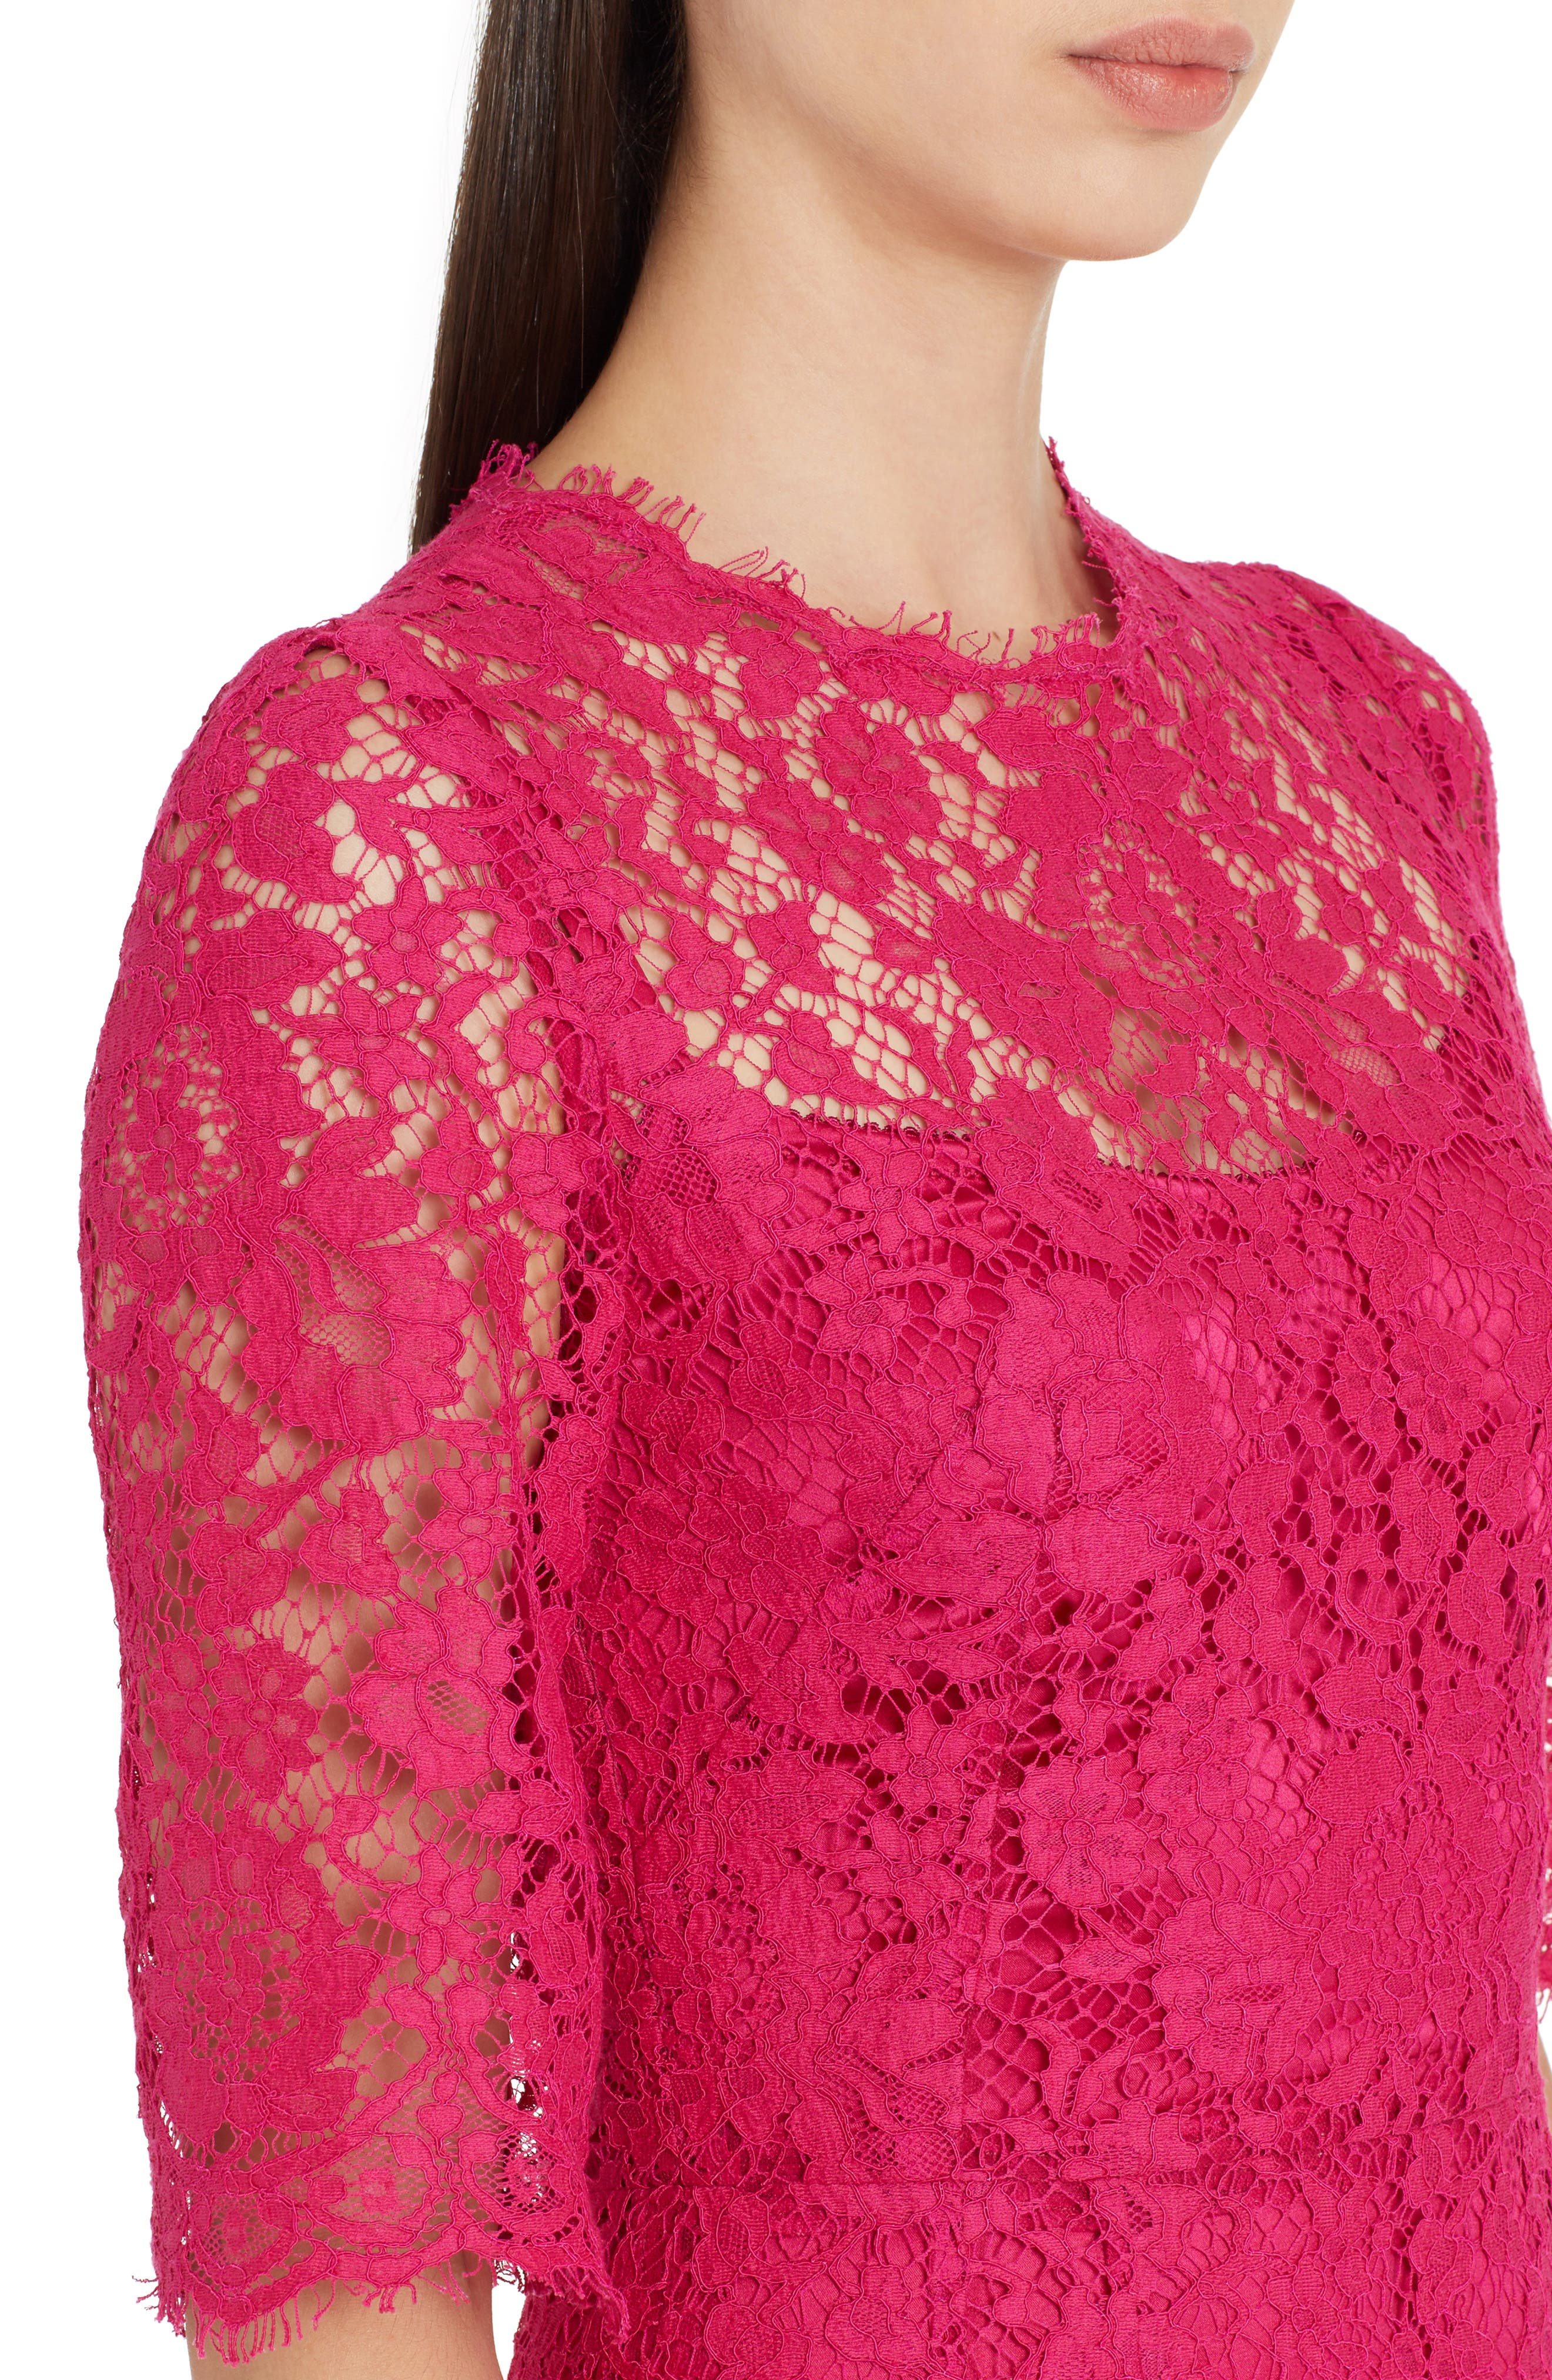 Lace A-Line Dress,                             Alternate thumbnail 4, color,                             Bright Pink